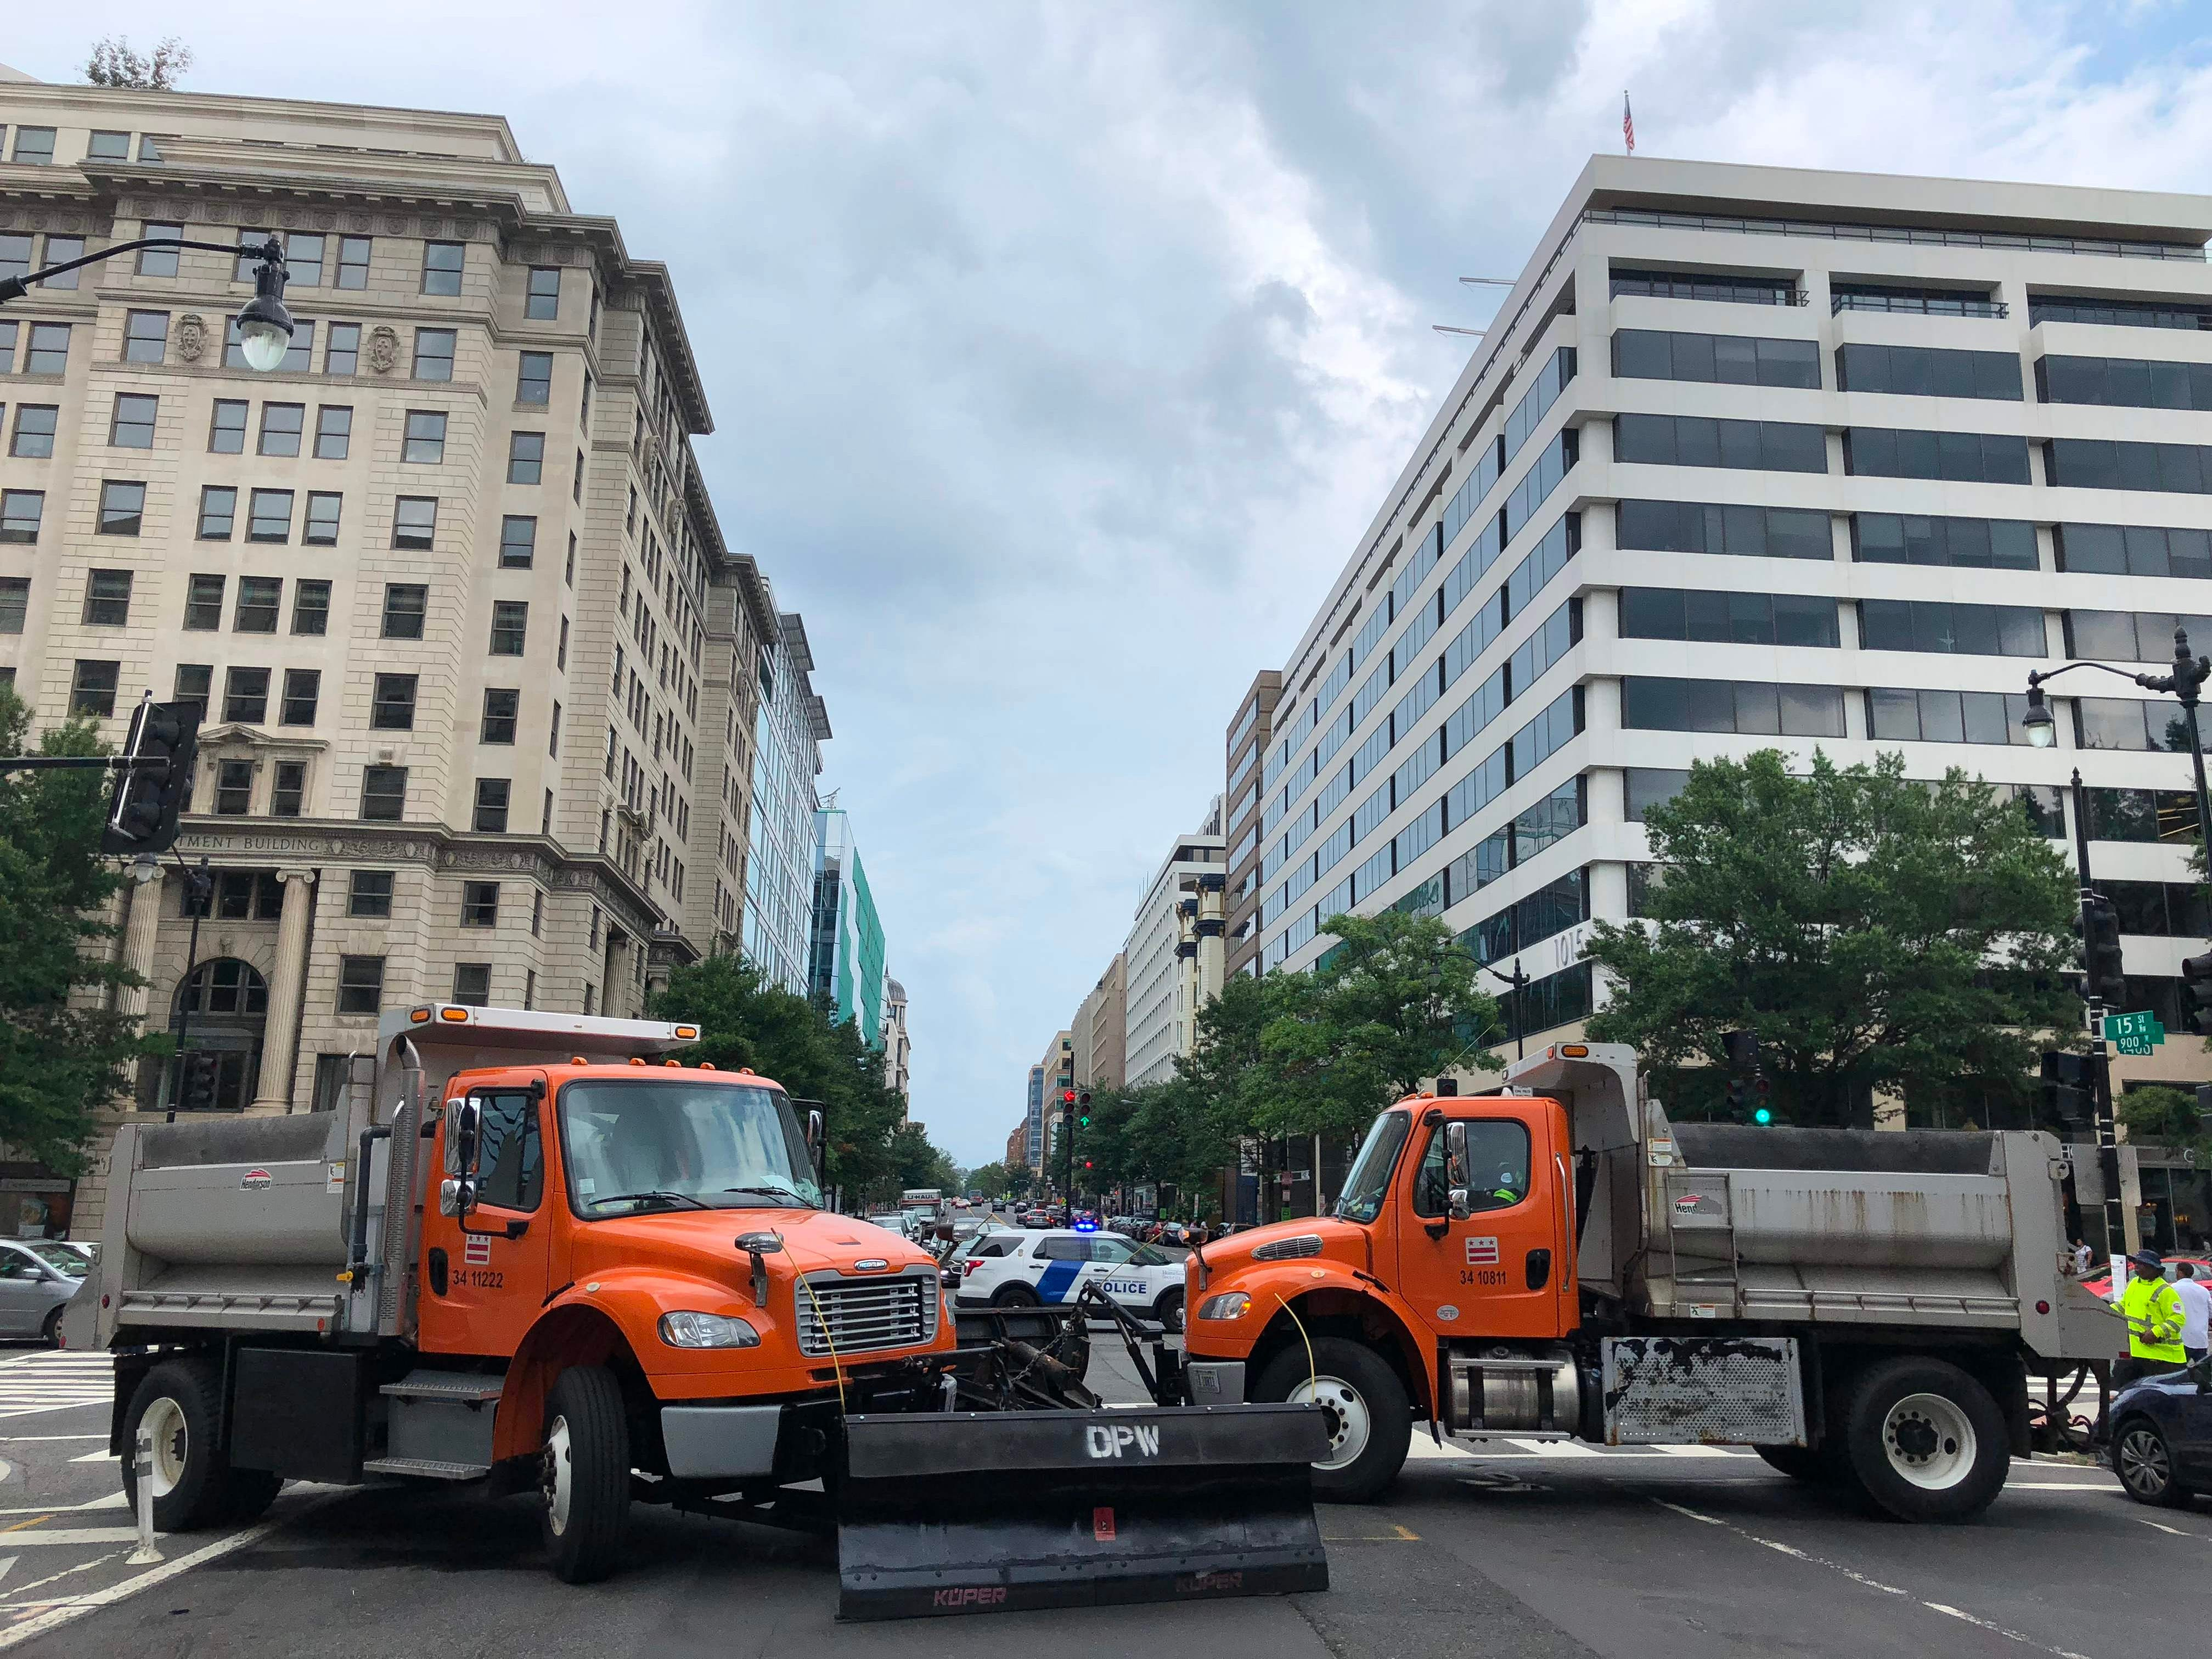 Heavy trucks barricade the streets near the White House as far-right activists gather for the Unite the Right rally Aug. 12, 2018 in Washington, DC on the one-year anniversary of the deadly violence at a similar protest in Charlottesville, Va.